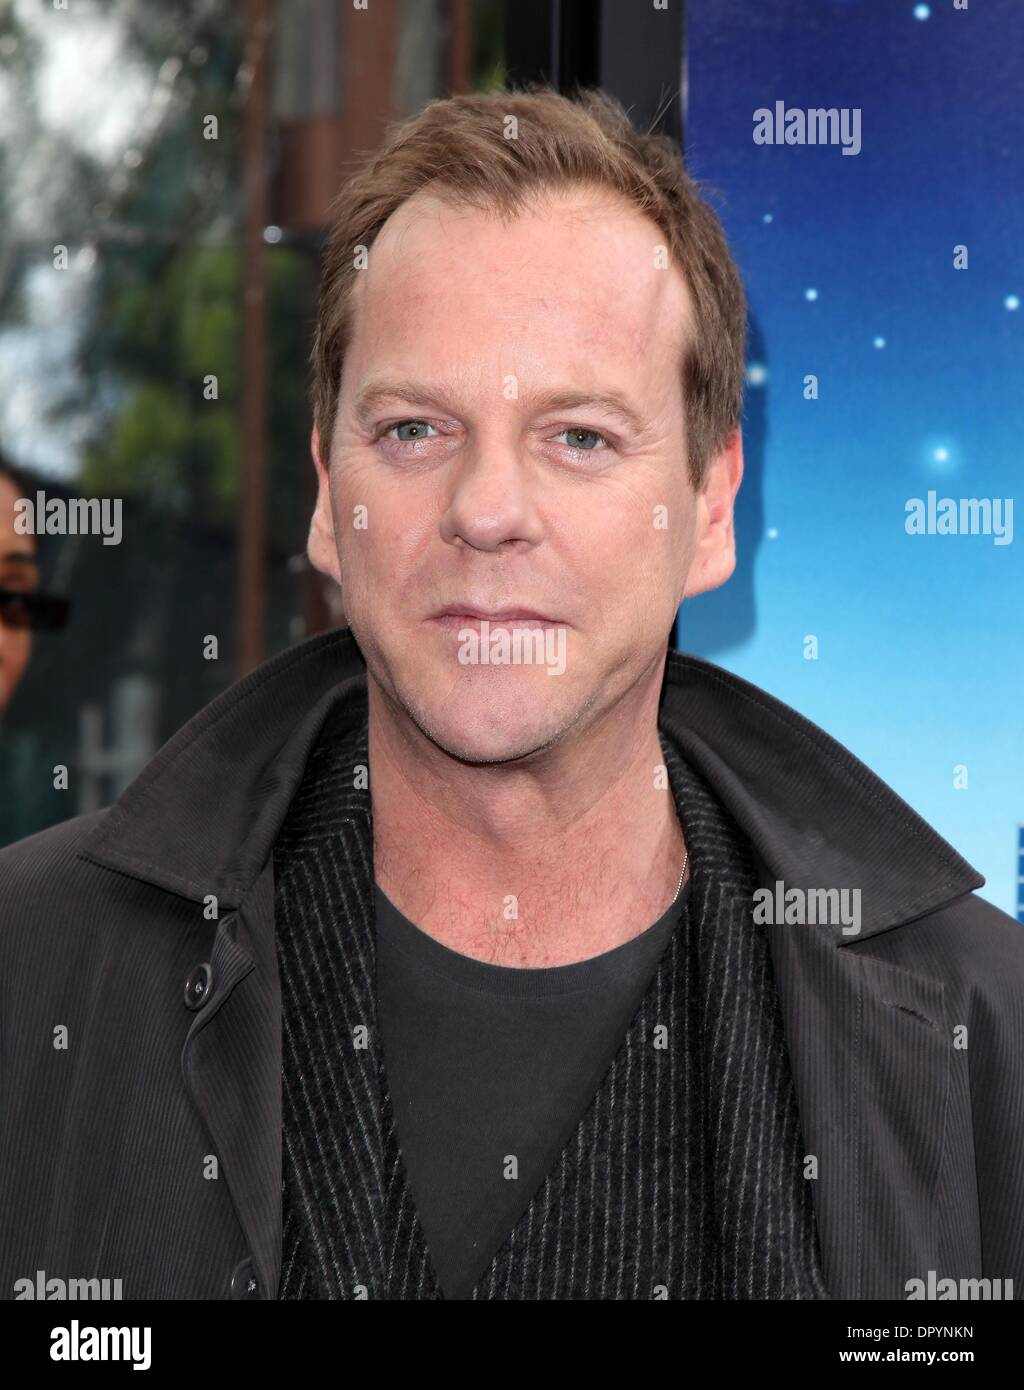 Mar 22, 2009 - Universal City, California, USA - Actor KIEFER SUTHERLAND arriving to the 'Monsters VS Aliens' Los Angeles Premiere held at the Gibson Amphitheatre. (Credit Image: © Lisa O'Connor/ZUMA Press) - Stock Image